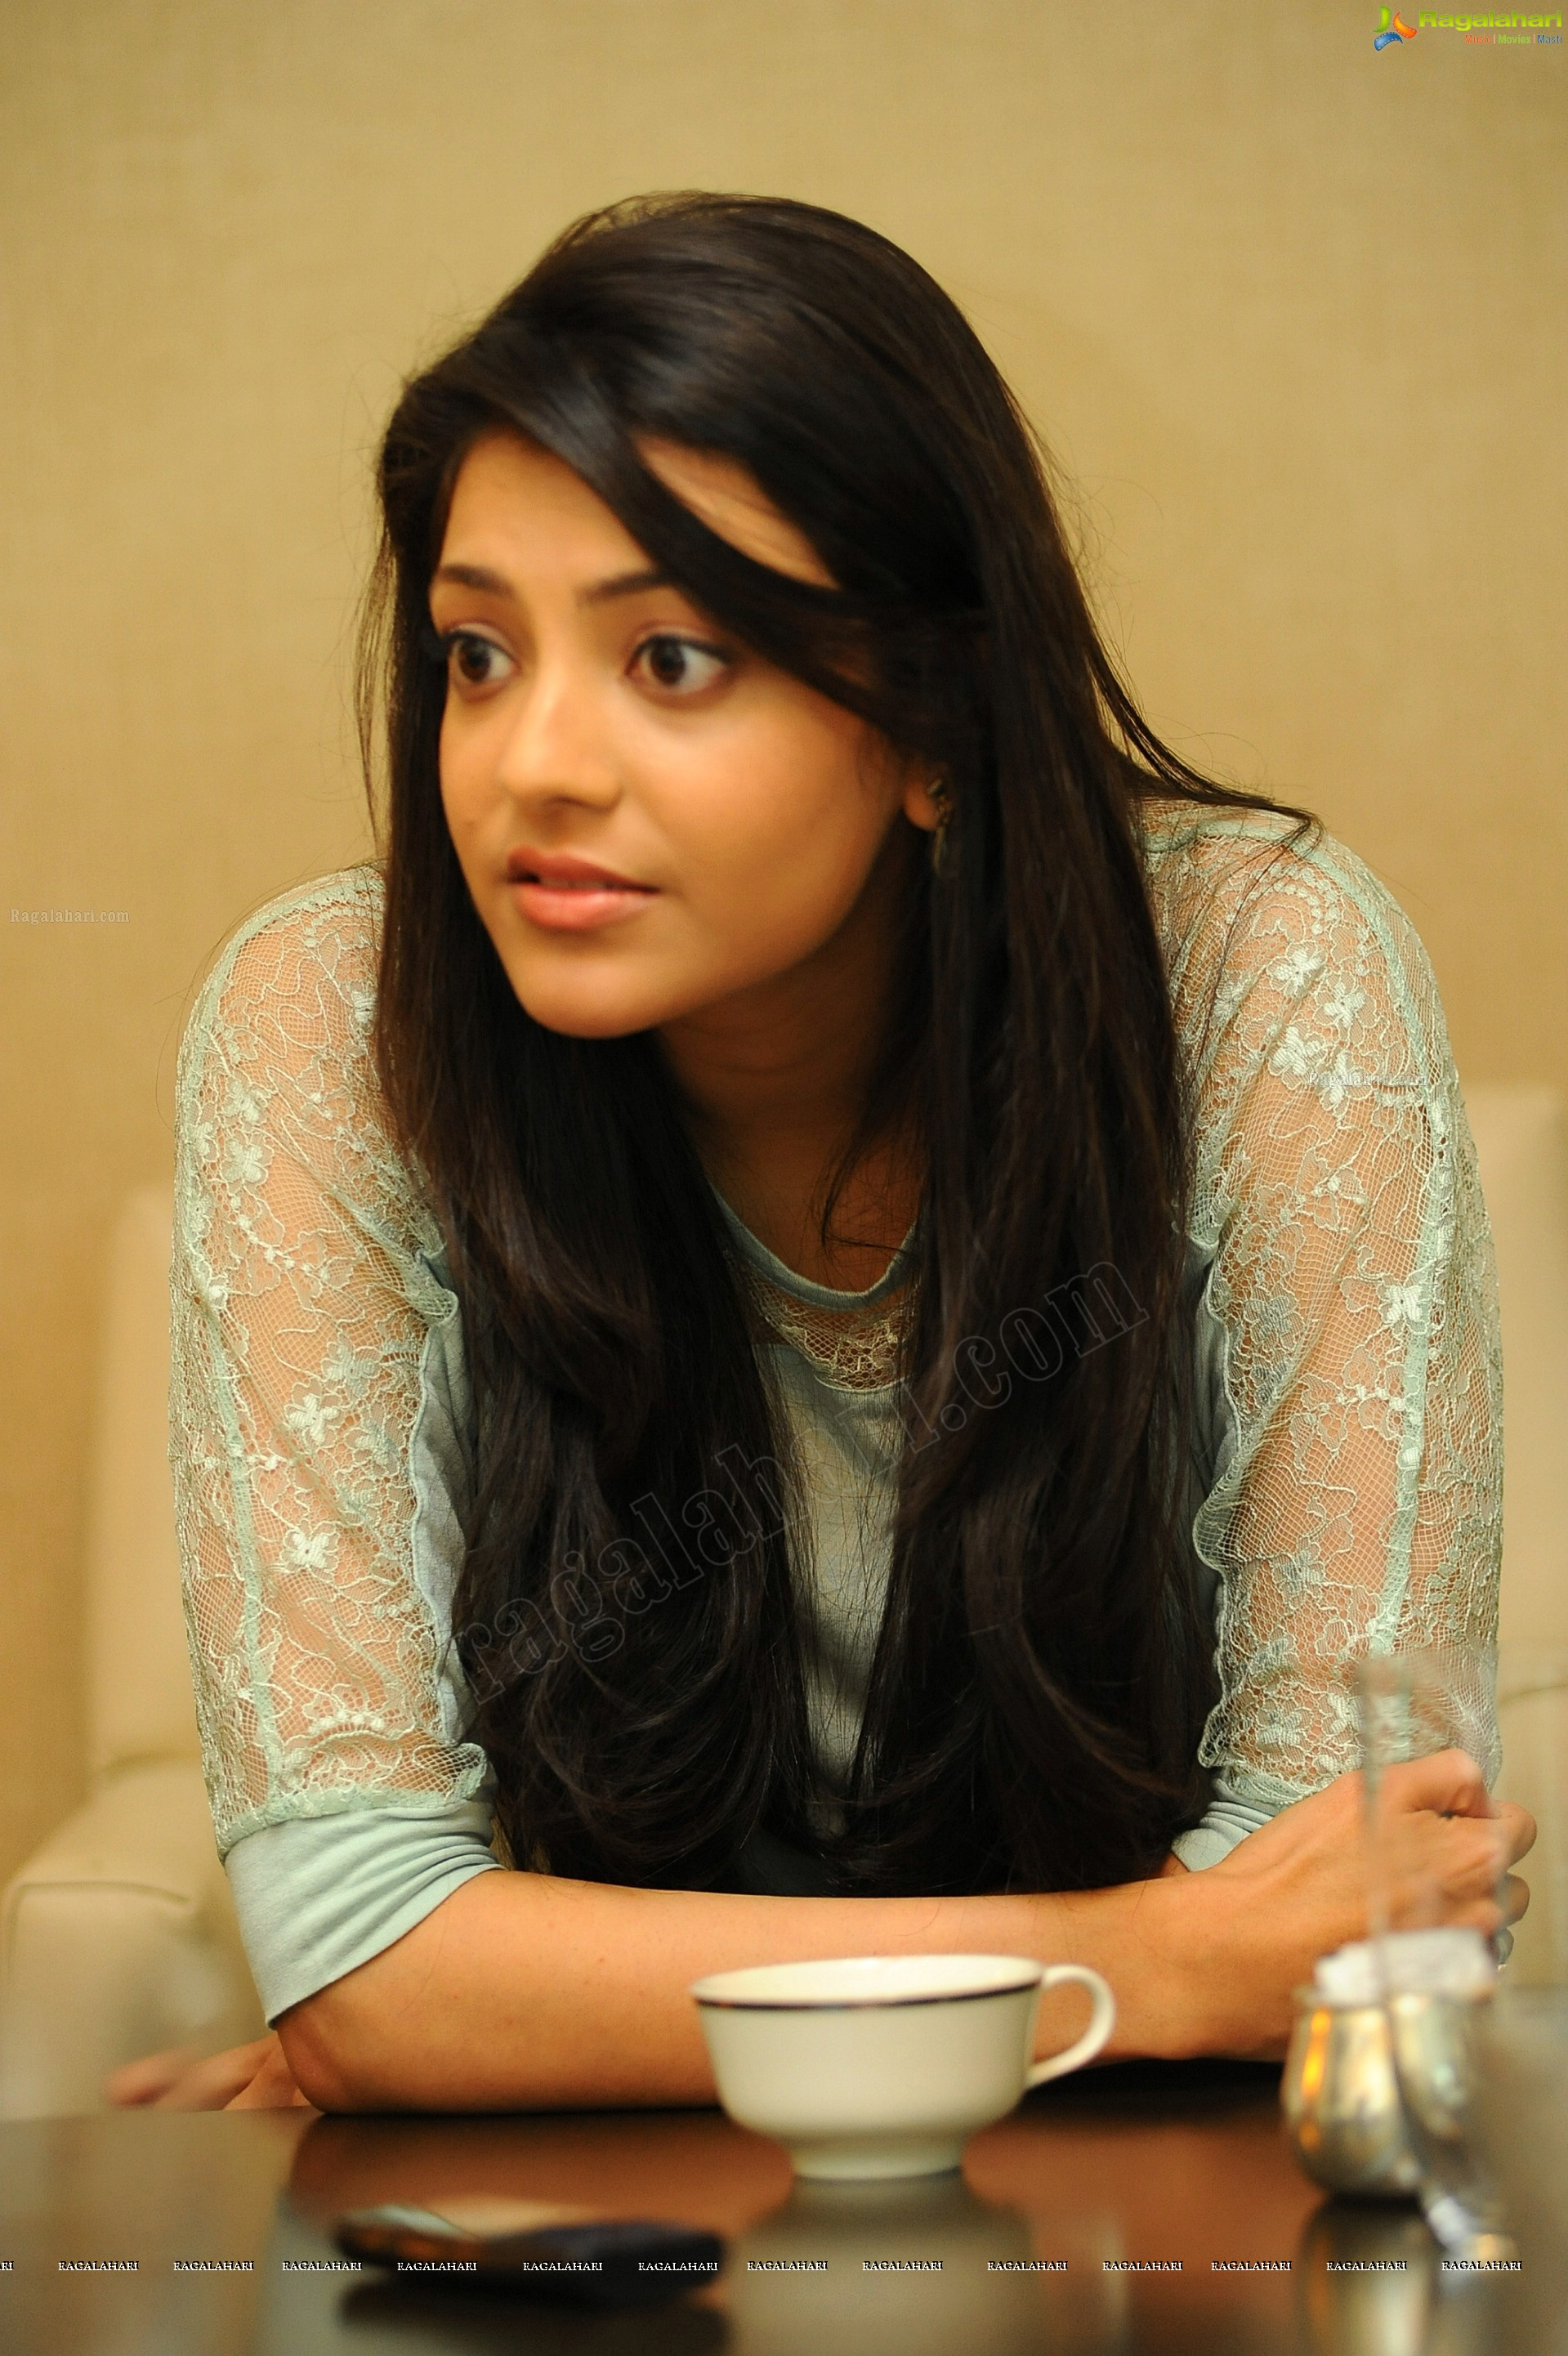 kajal agarwal (hd) image 44 | telugu cinema hero photos gallery